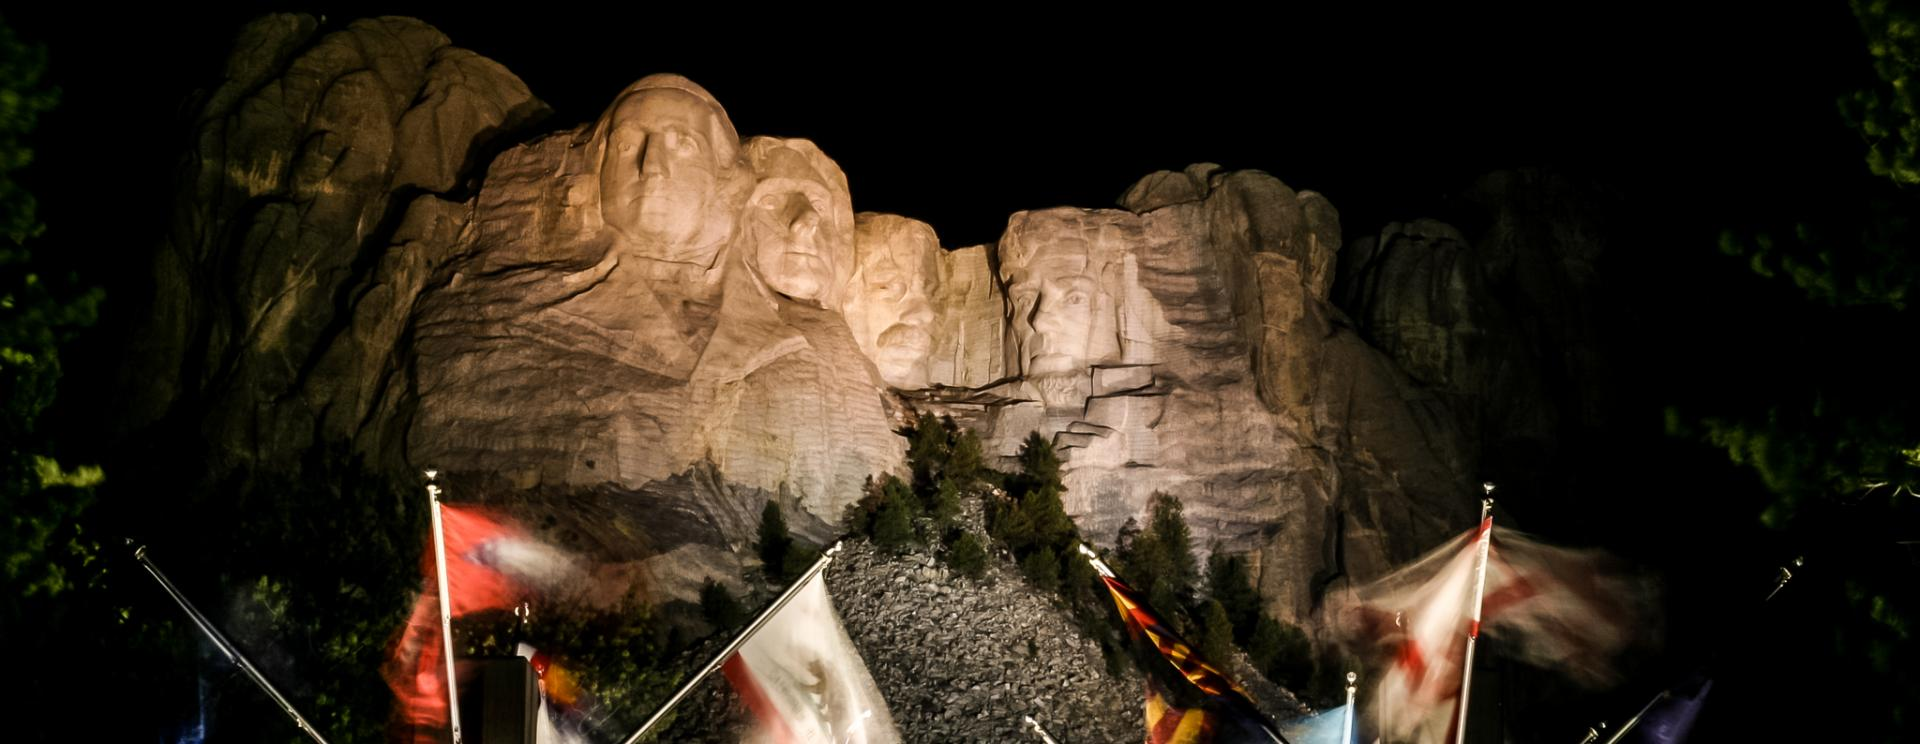 Evening Lighting Ceremony at Mount Rushmore